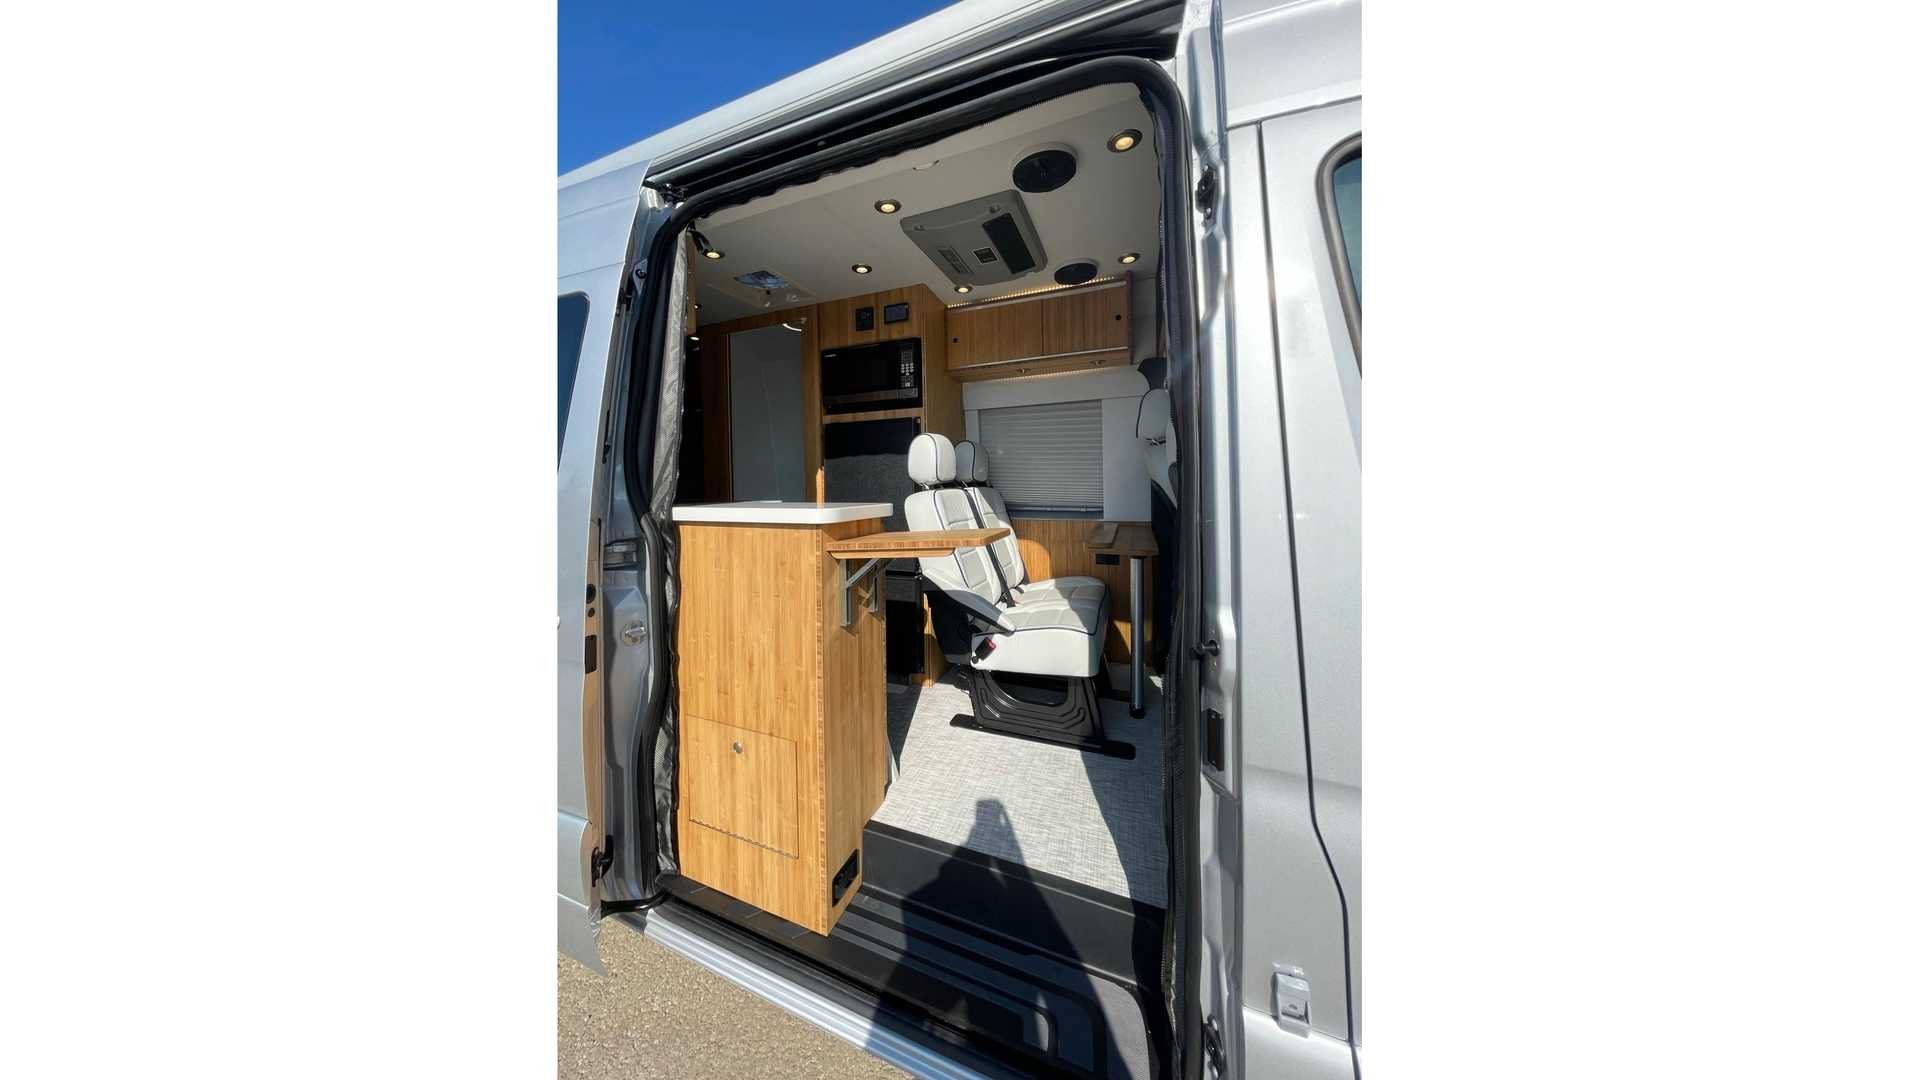 https://cdn.motor1.com/images/mgl/PzWnG/s6/mercedes-sprinter-4x4-camper-by-creative-mobile-interiors-interior.jpg